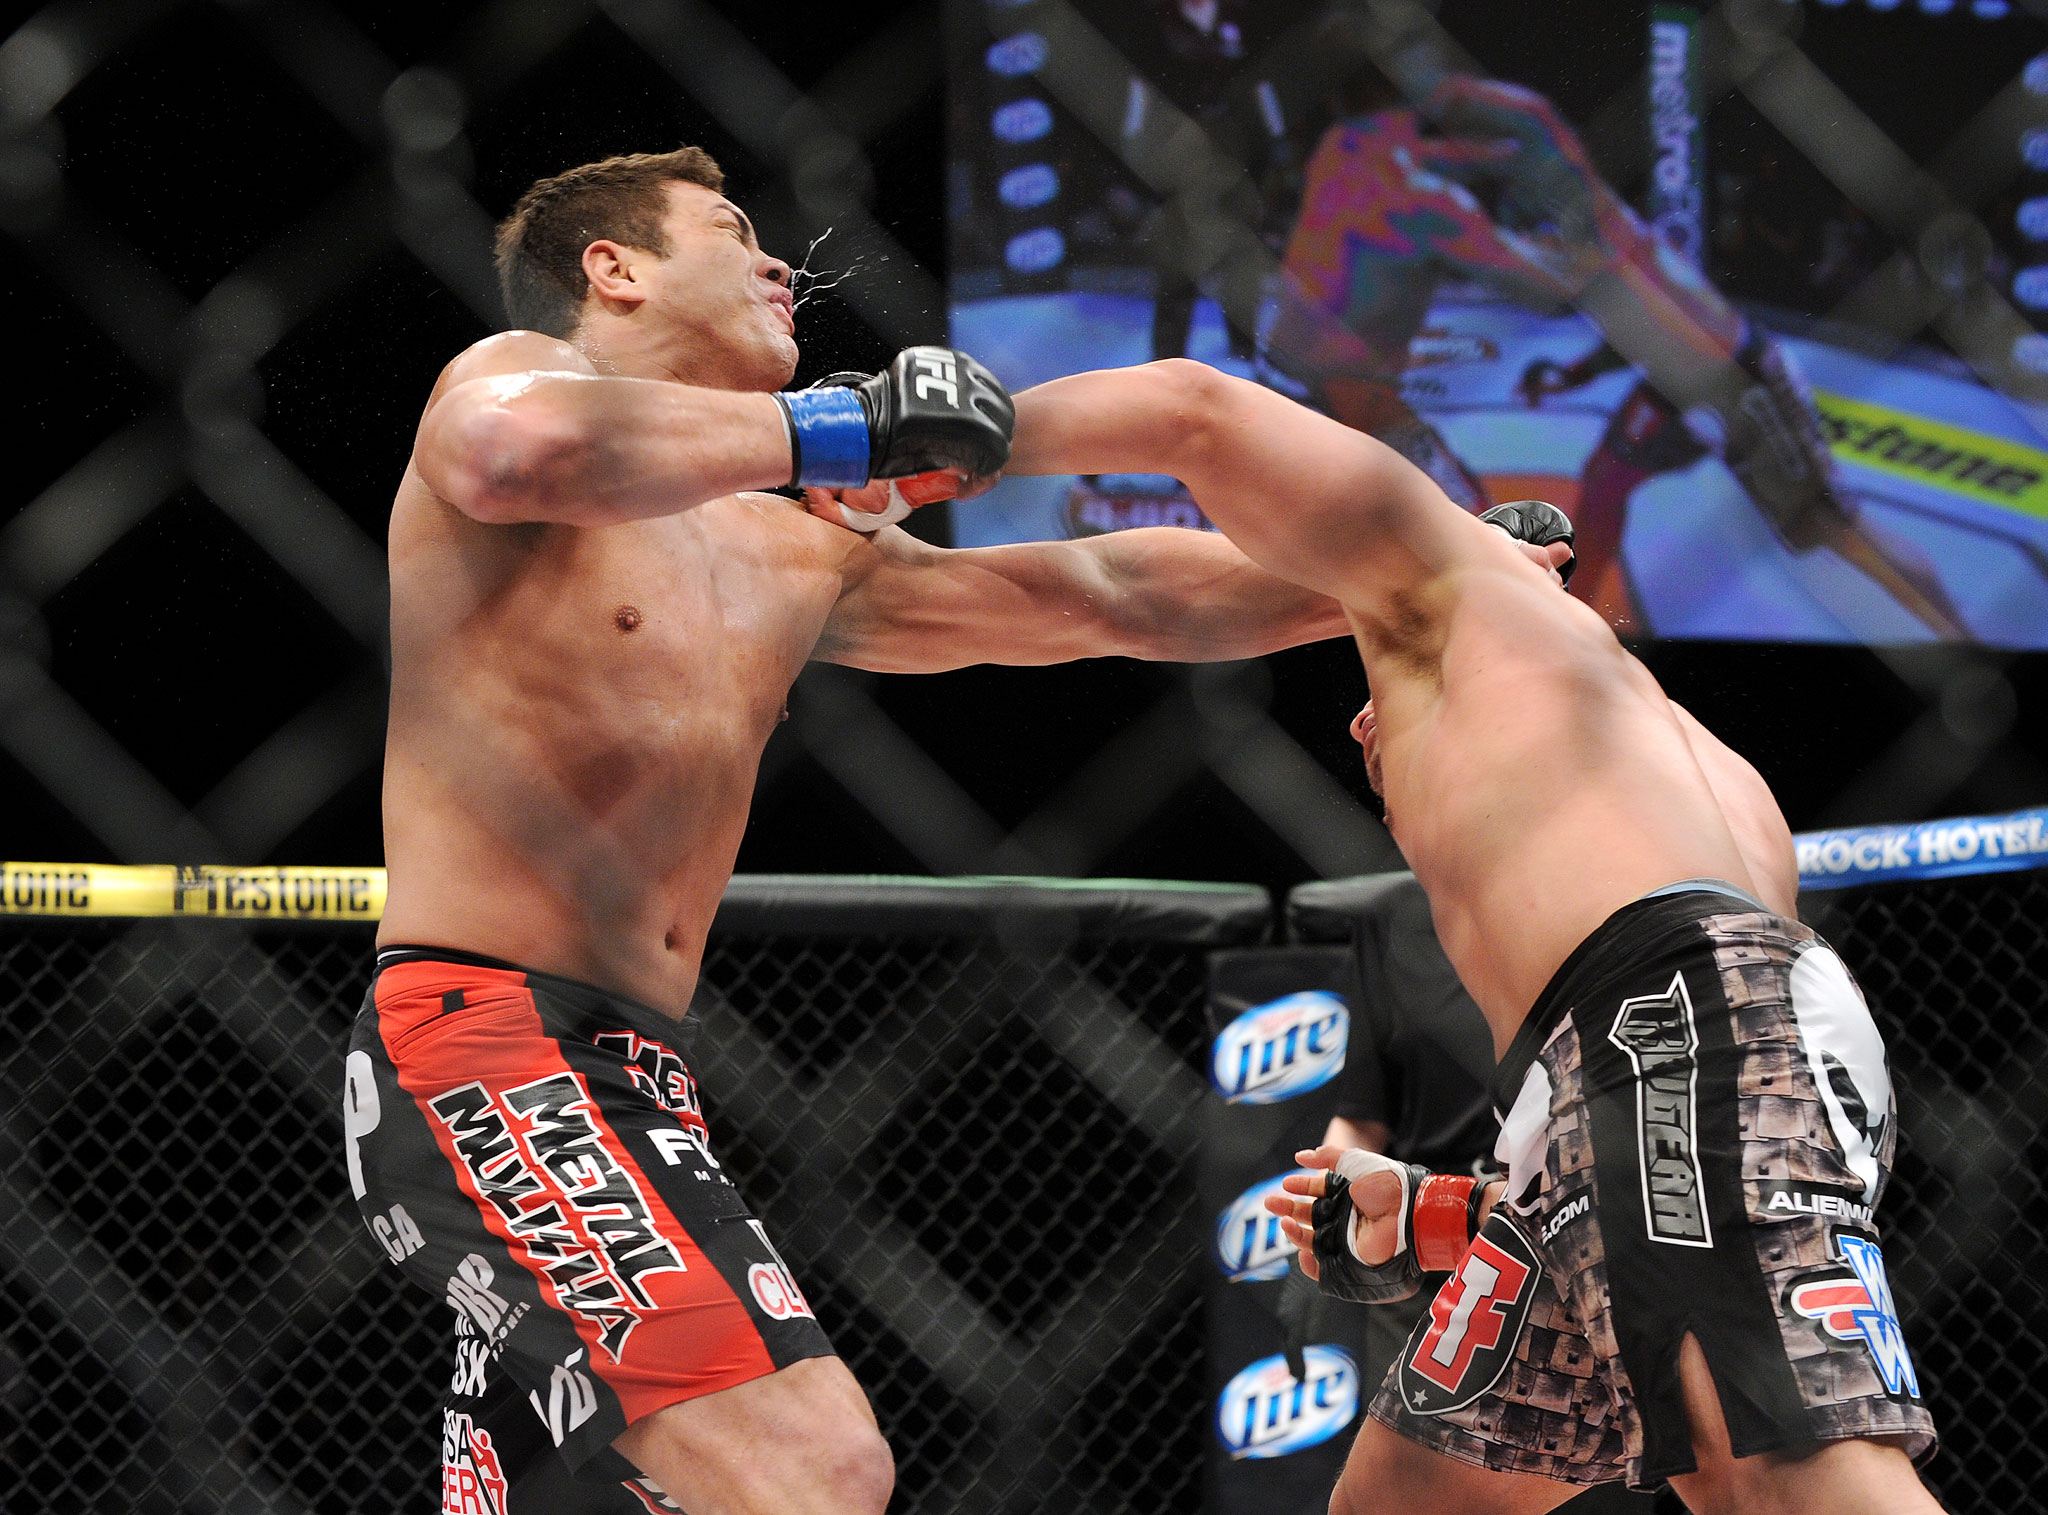 The Ultimate Fighter Finale 16